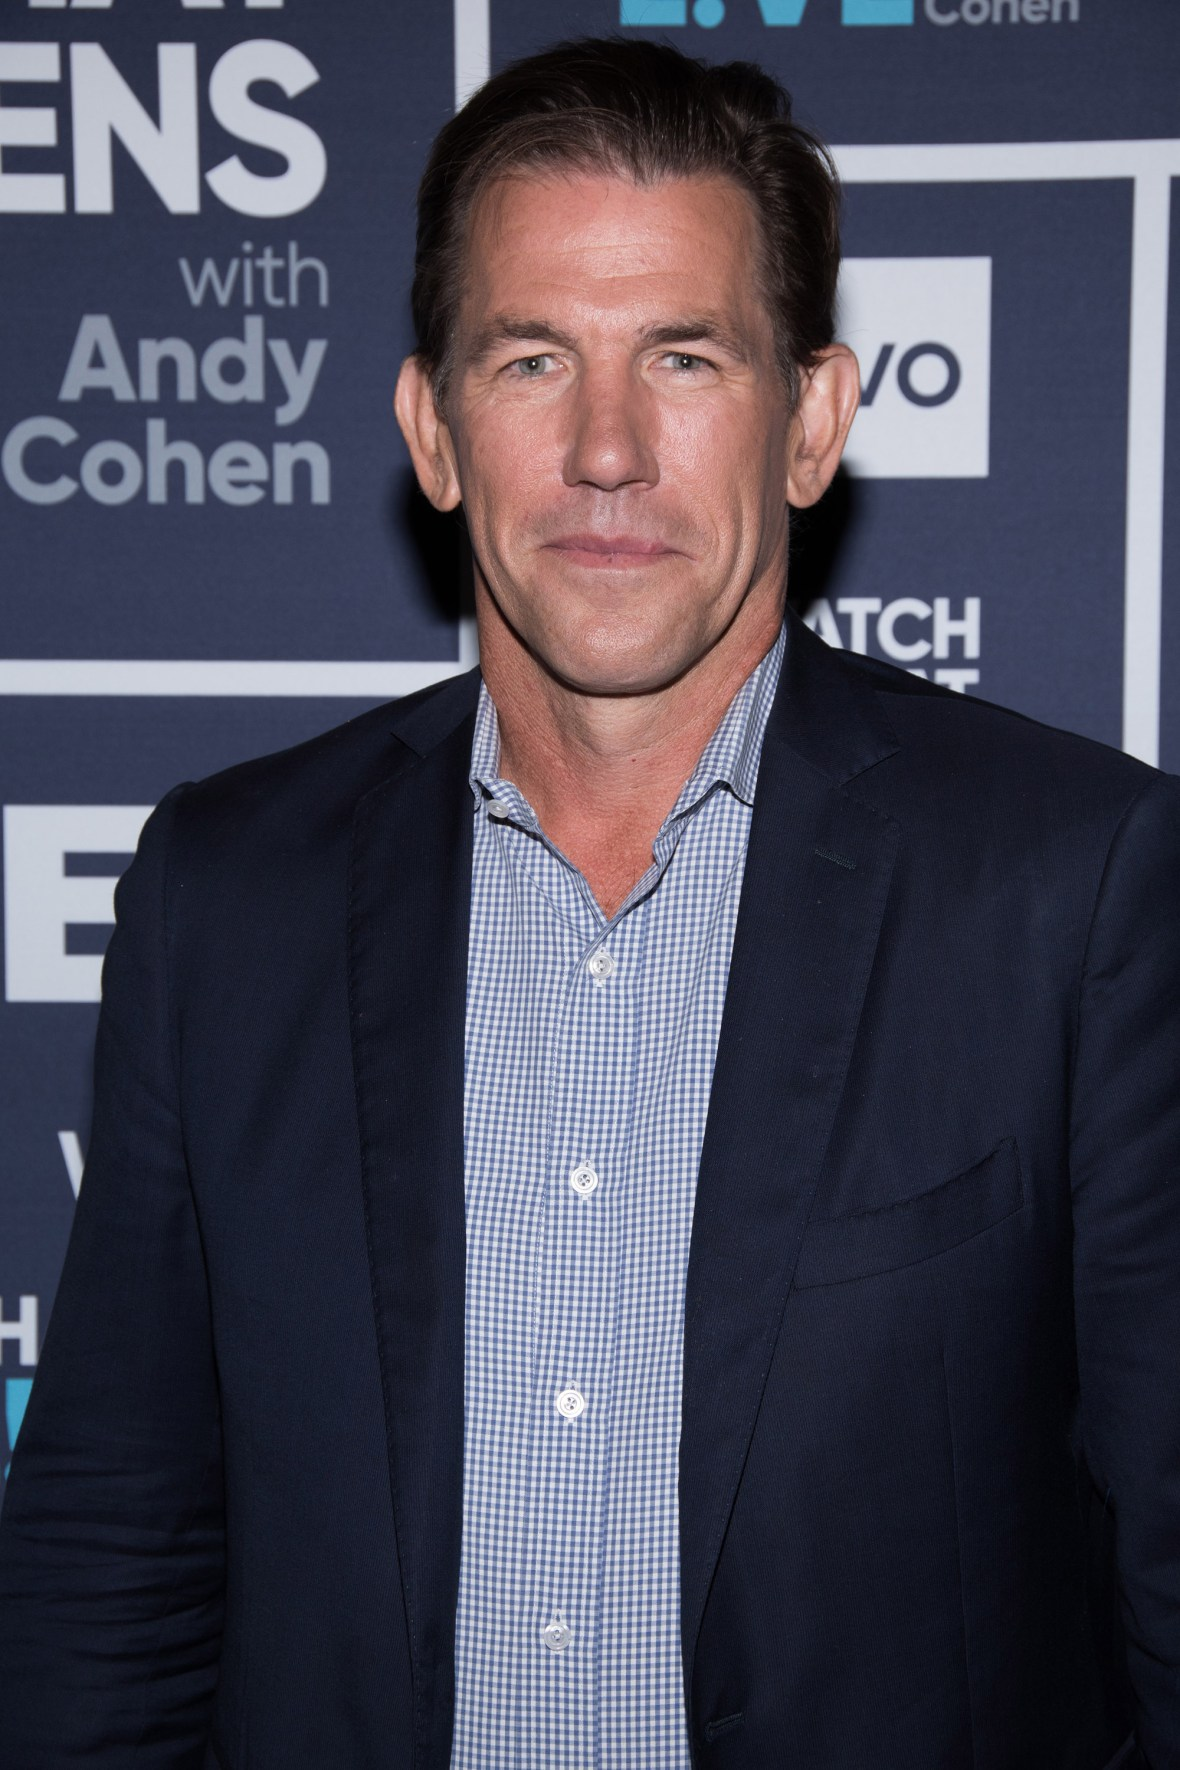 Thomas Ravenel Arrested on Assault and Battery Charges For